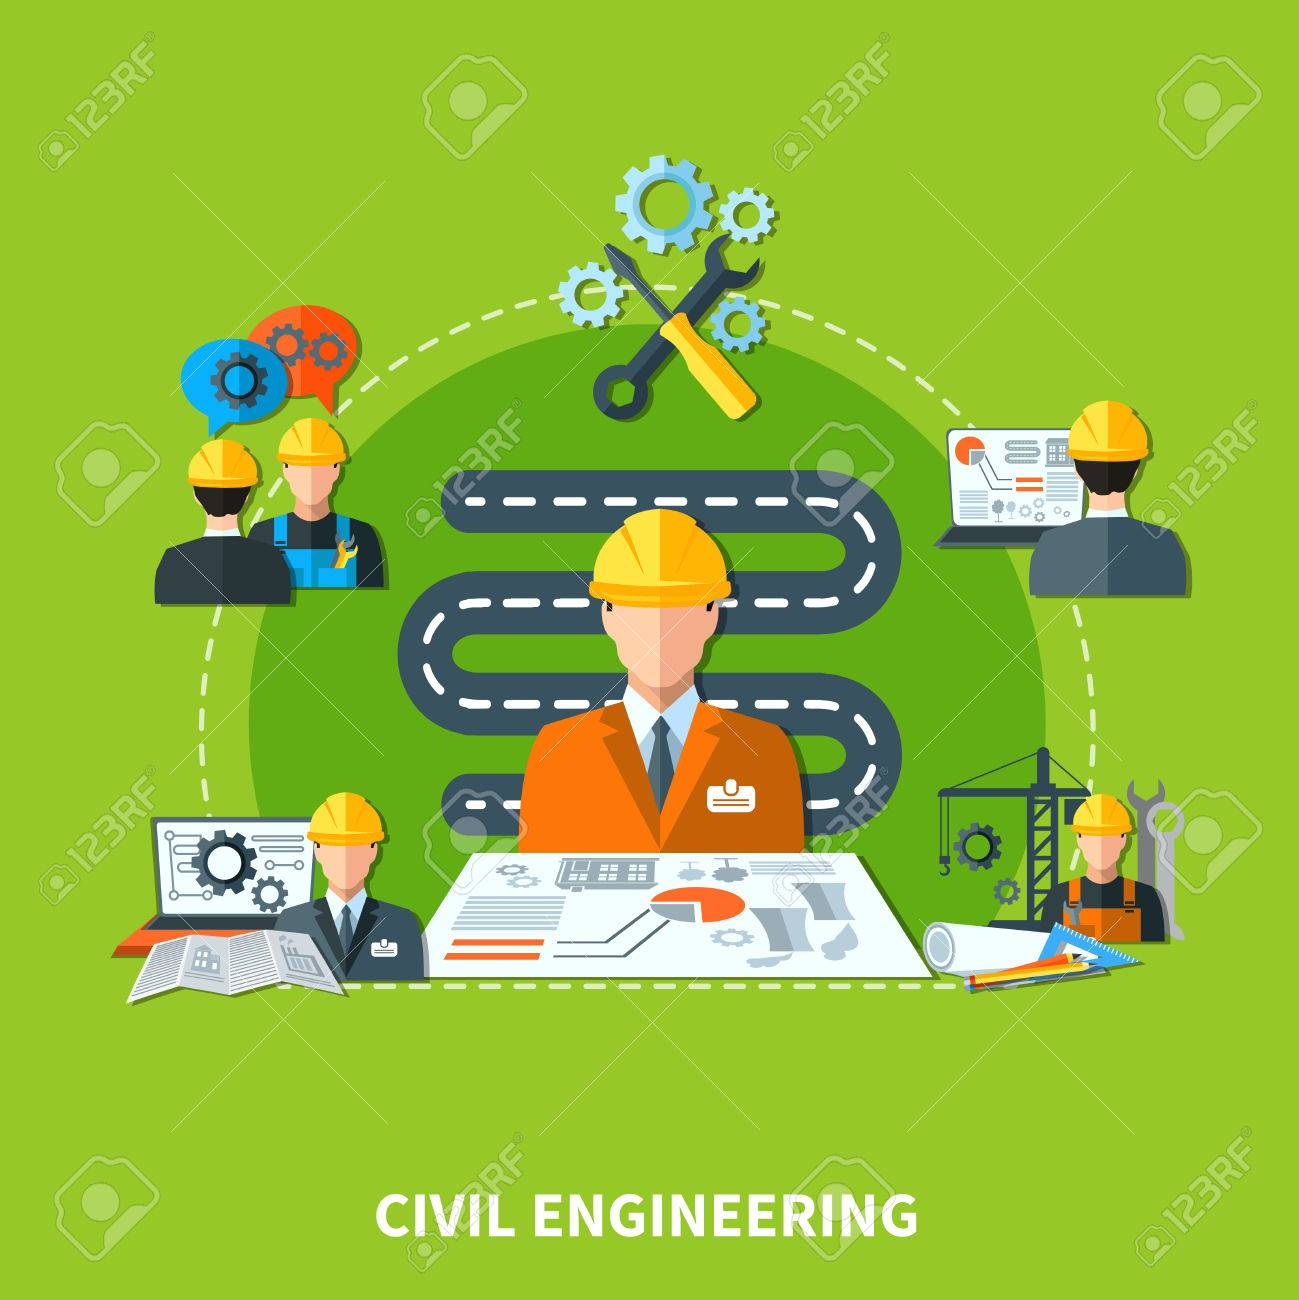 Civil Engineering Composition Of Flat Design Engineer And Construction Stock Photo Picture And Royalty Free Image Image 74772959